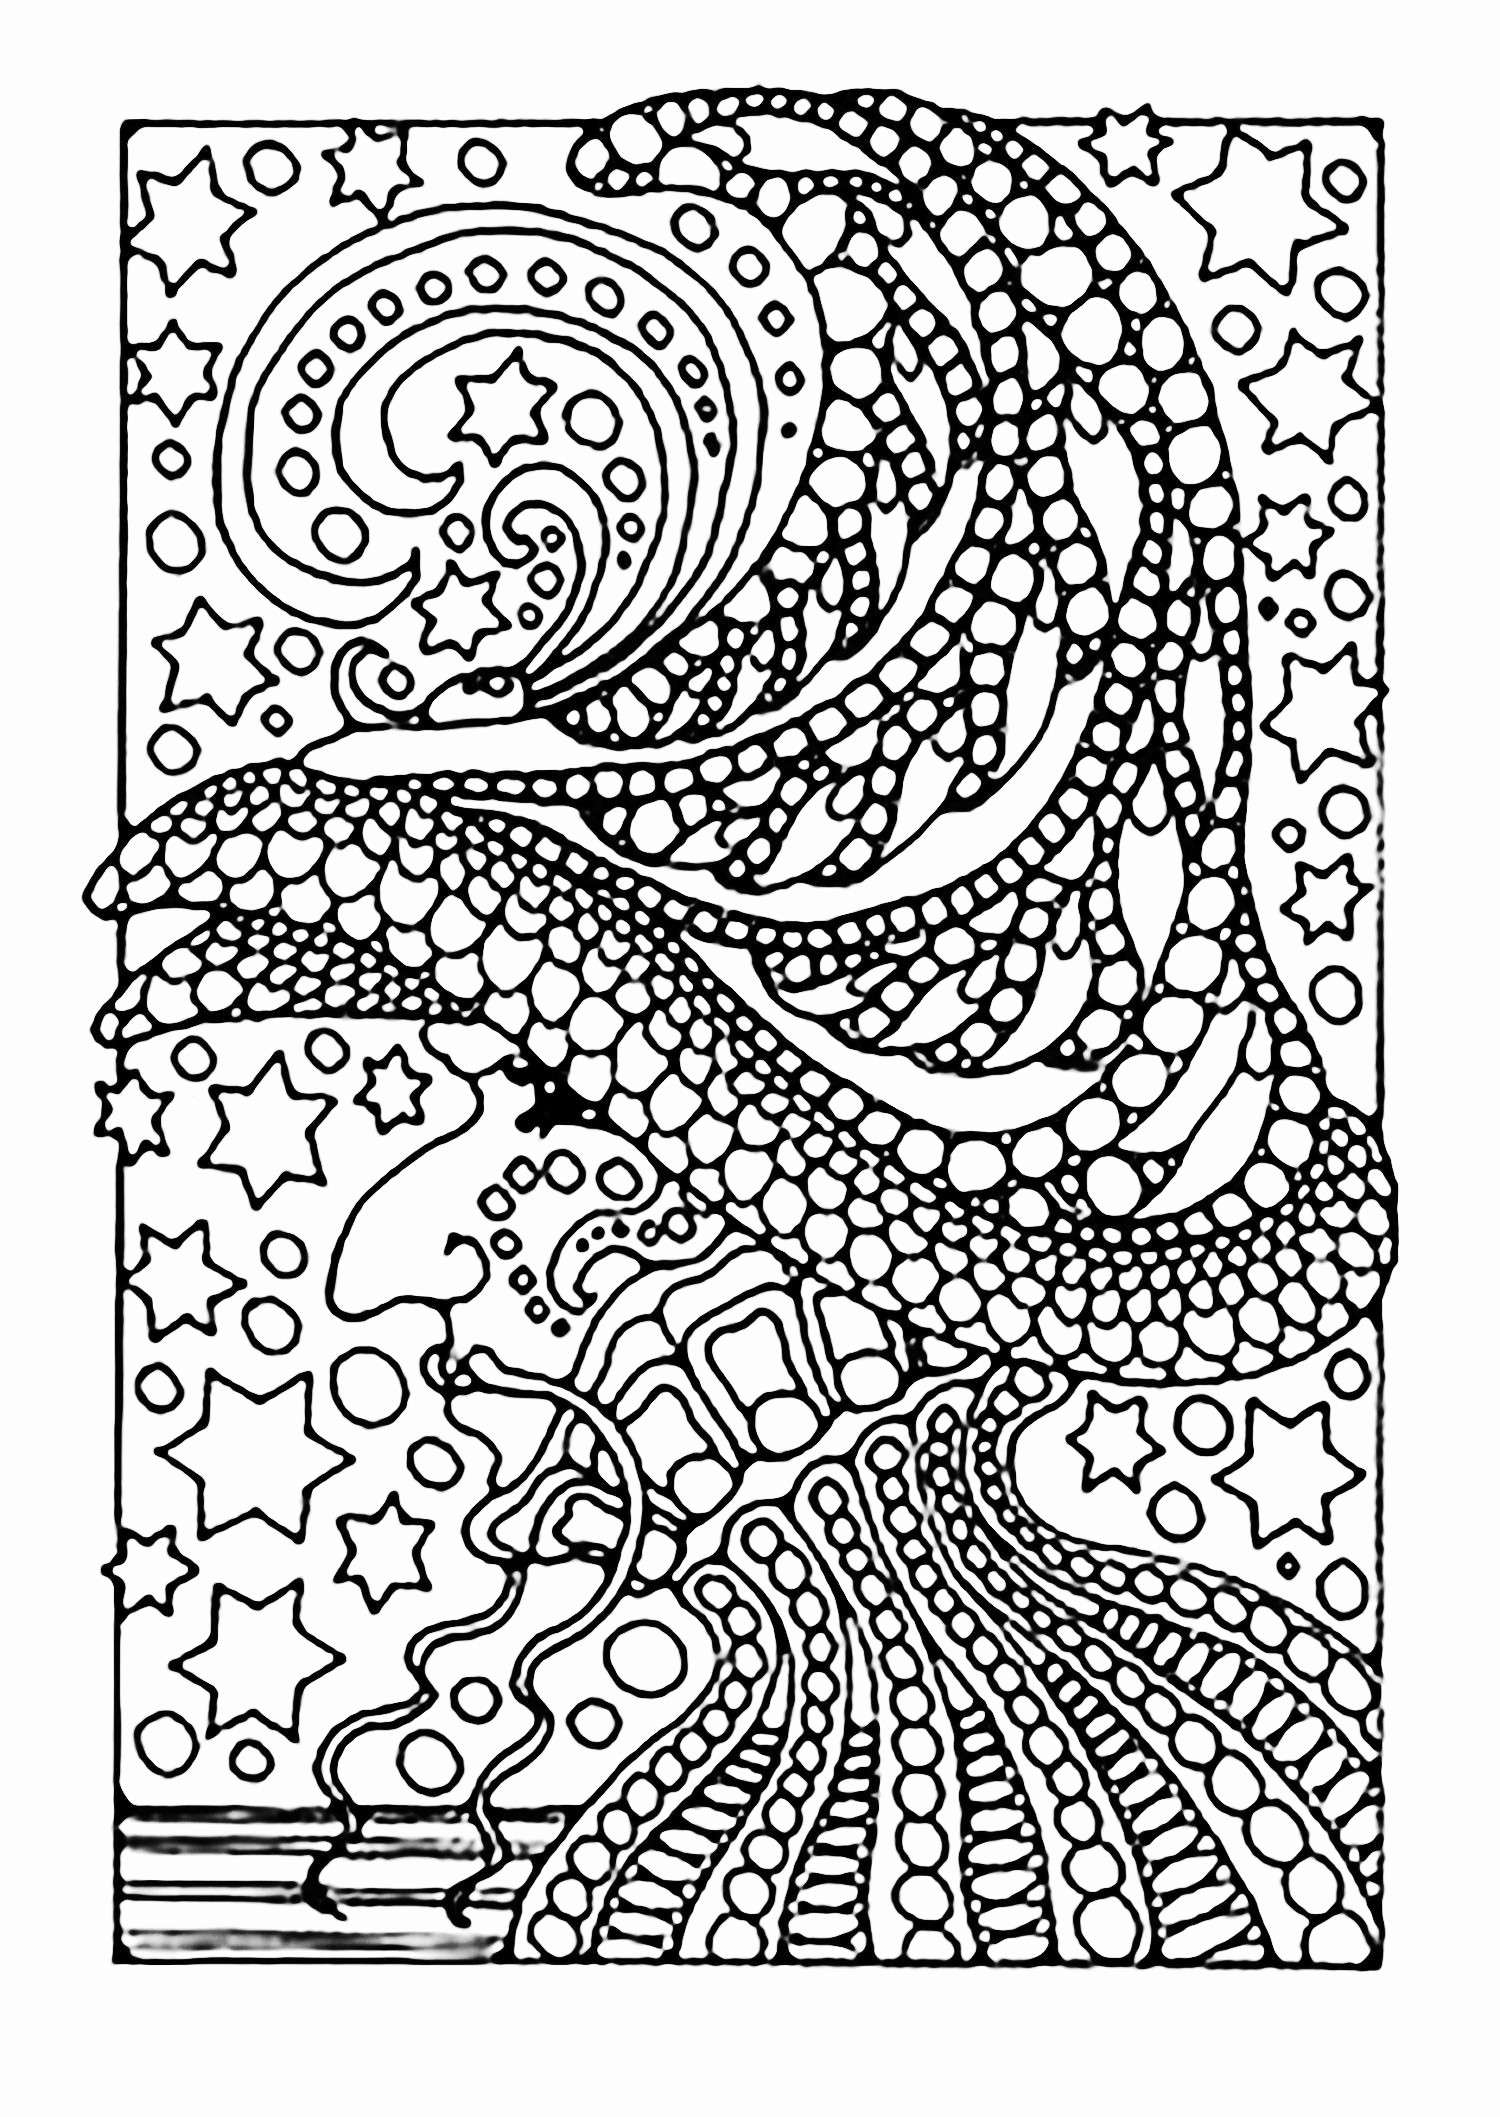 Mini Cooper Coloring Pages - Mini Coloring Pages Princess Zelda Coloring Pages Printable